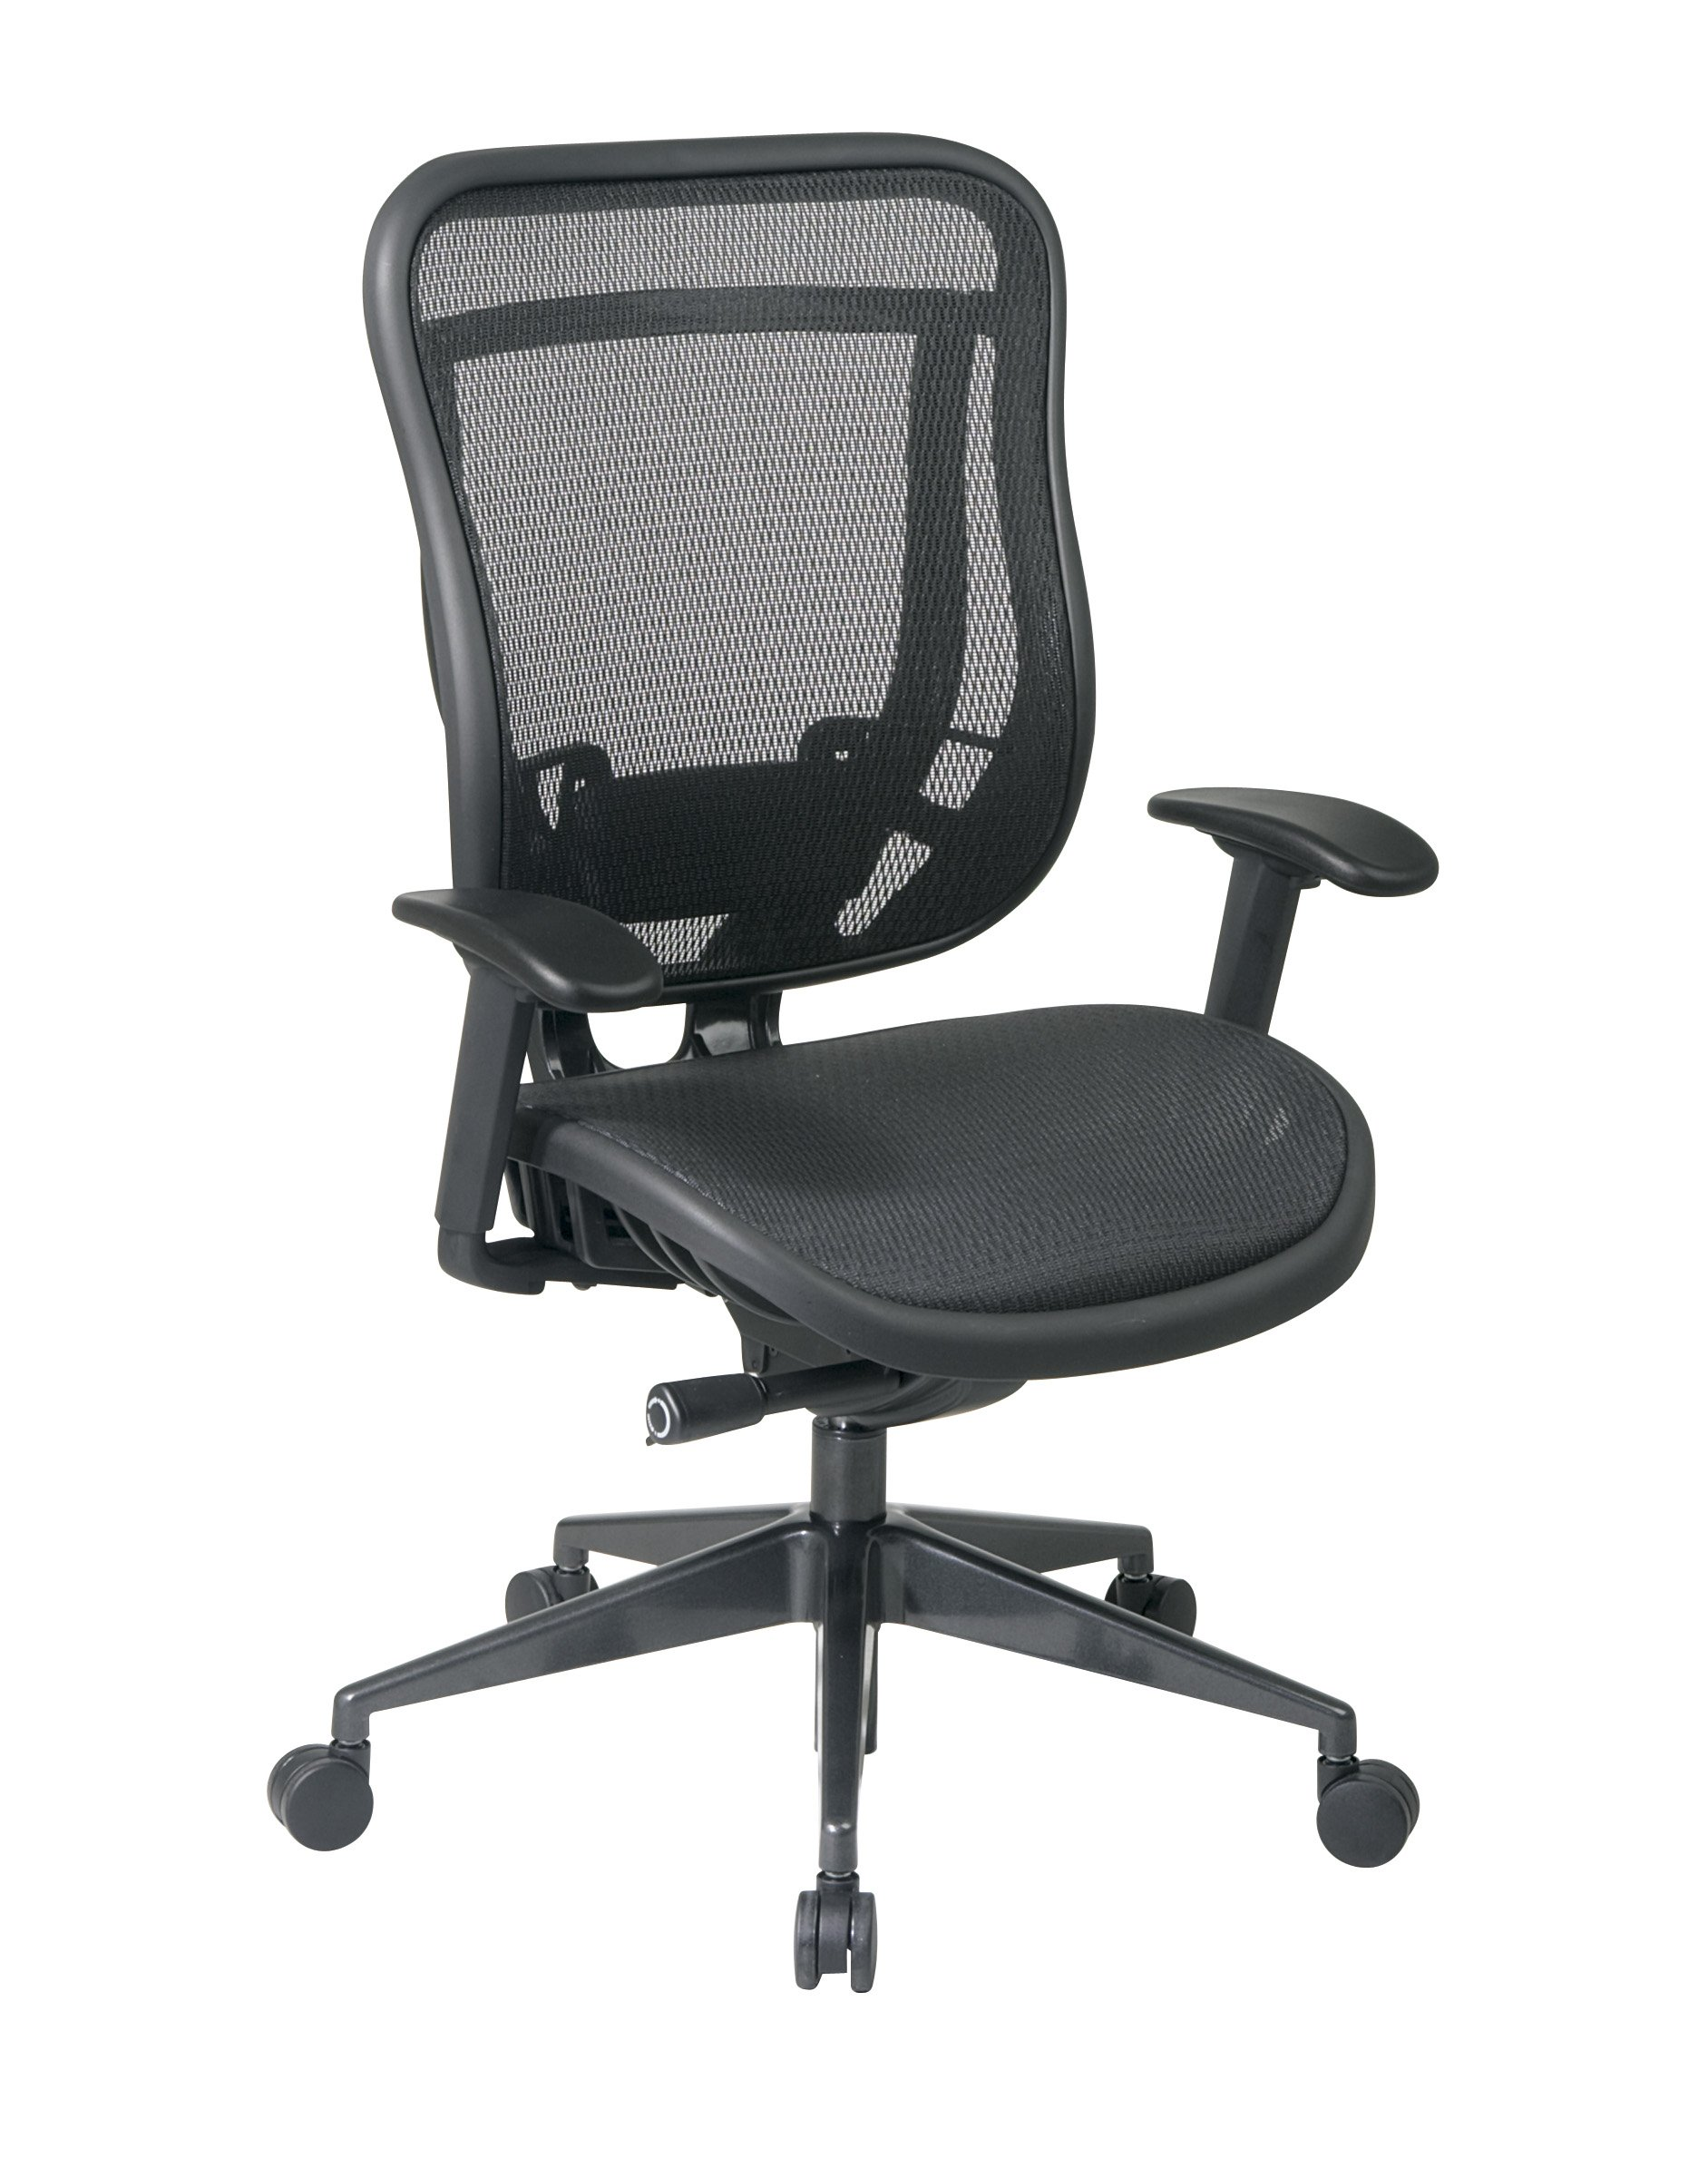 Amazon.com: Office Star SPACE Mesh Headrest in Black (Fits 818 ...